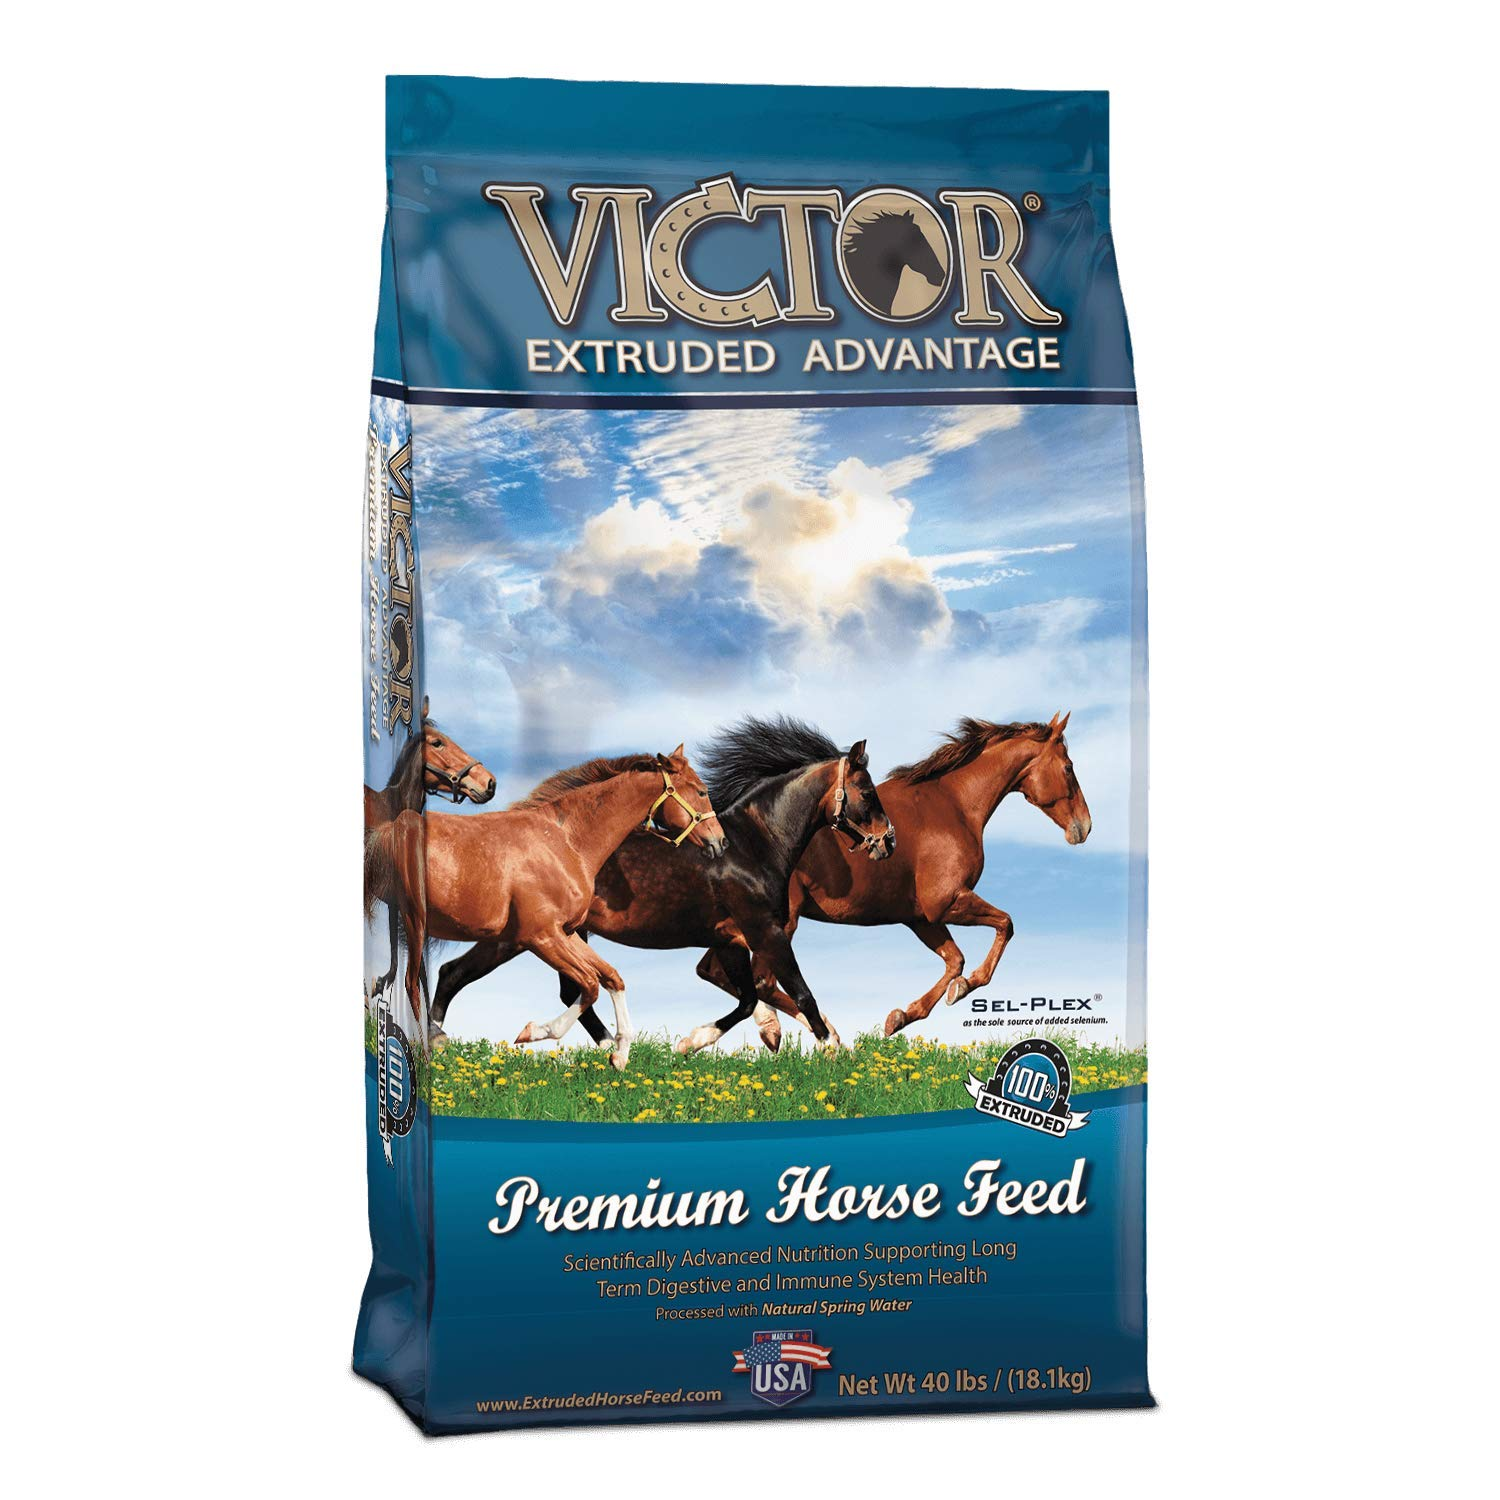 Victor Extruded Advantage - Premium Horse Feed, 40 Lb. Bag